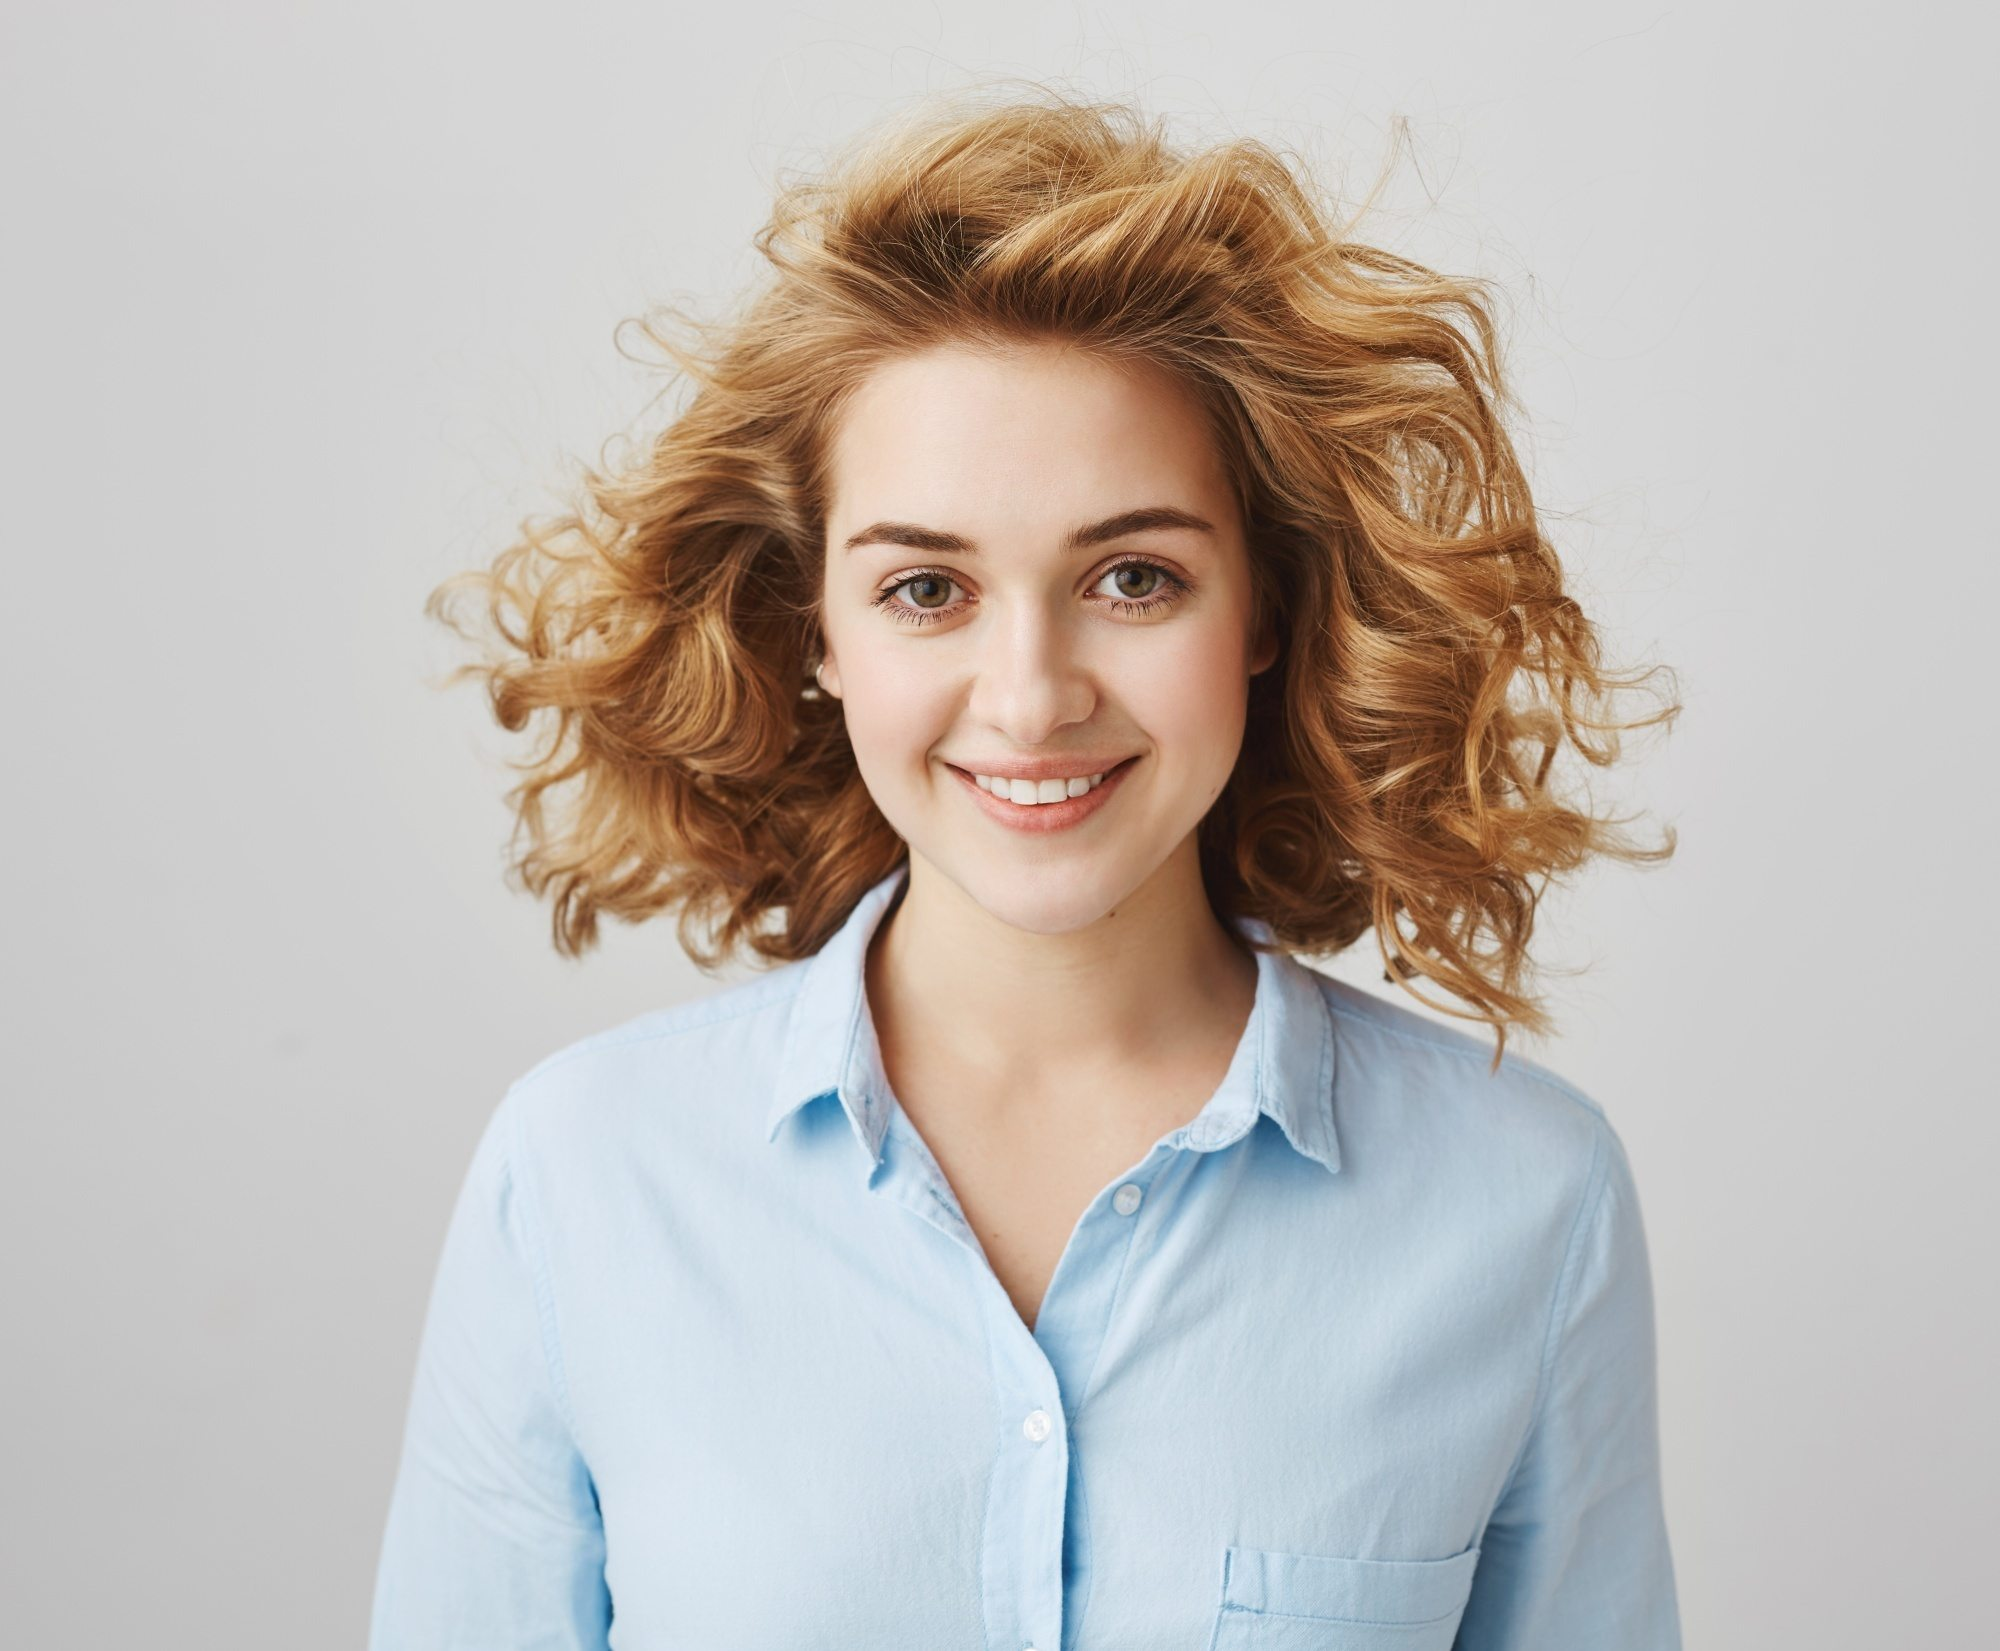 Short wavy hair ideas: Woman with brown curly hair smiling